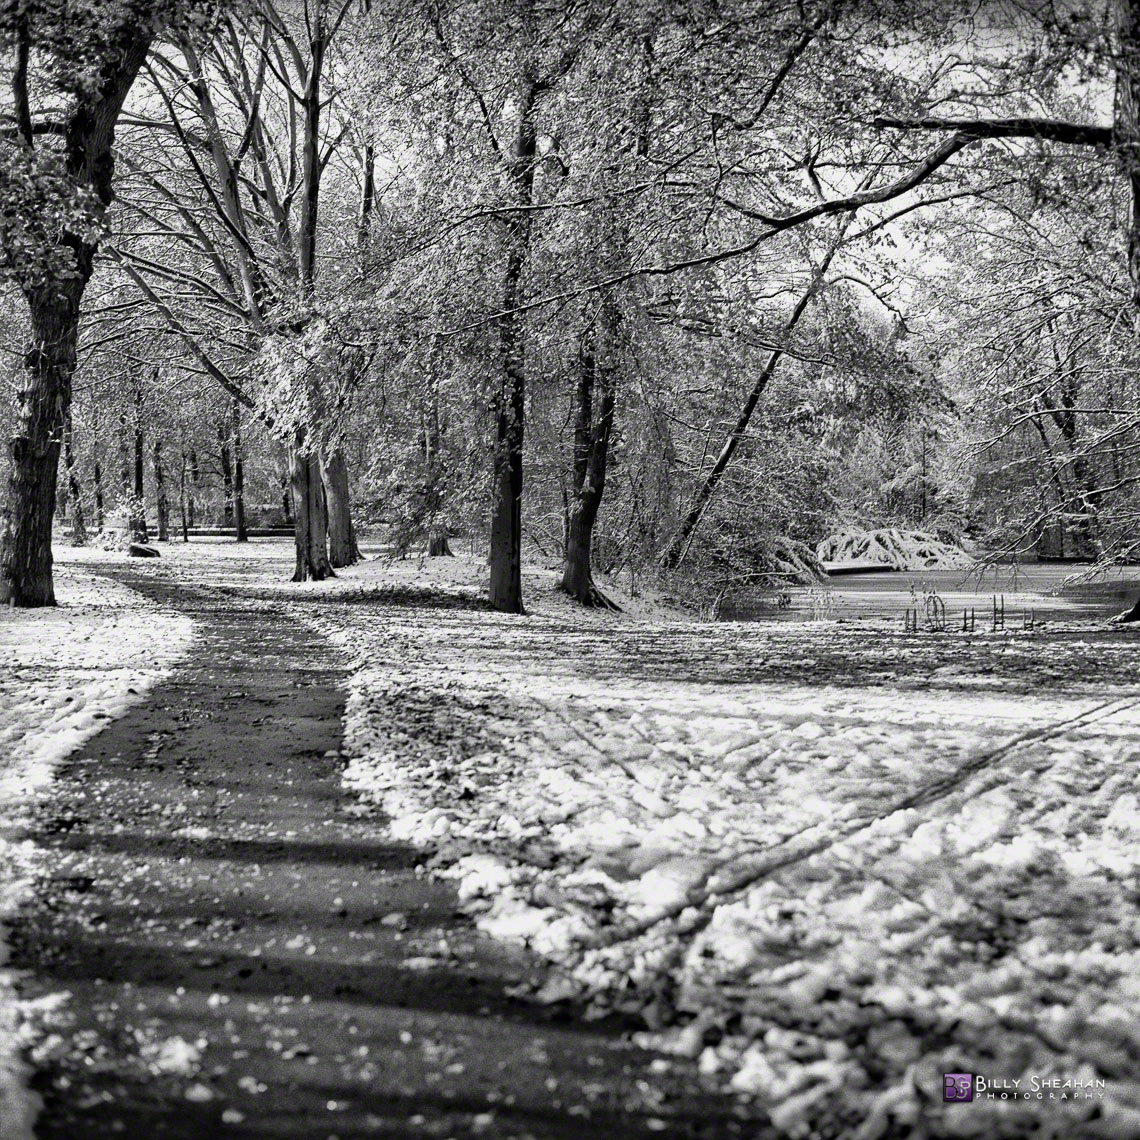 Tiergarten_Snowy_Path__Berlin__Germany_Germany-360_03_BW_D